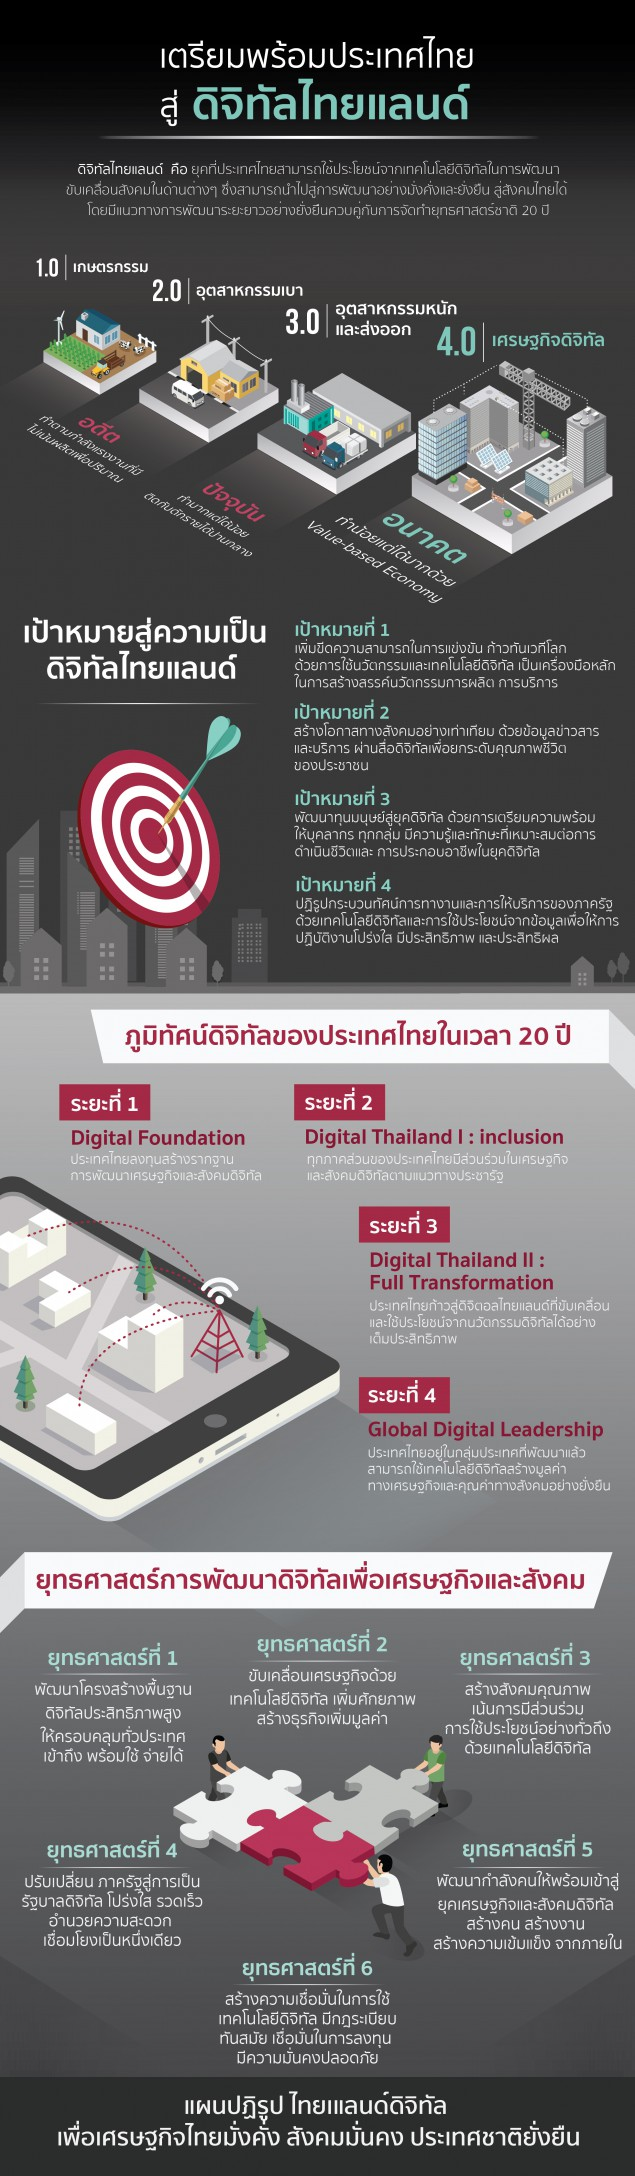 Digital Thailand 4.0-01 (1)